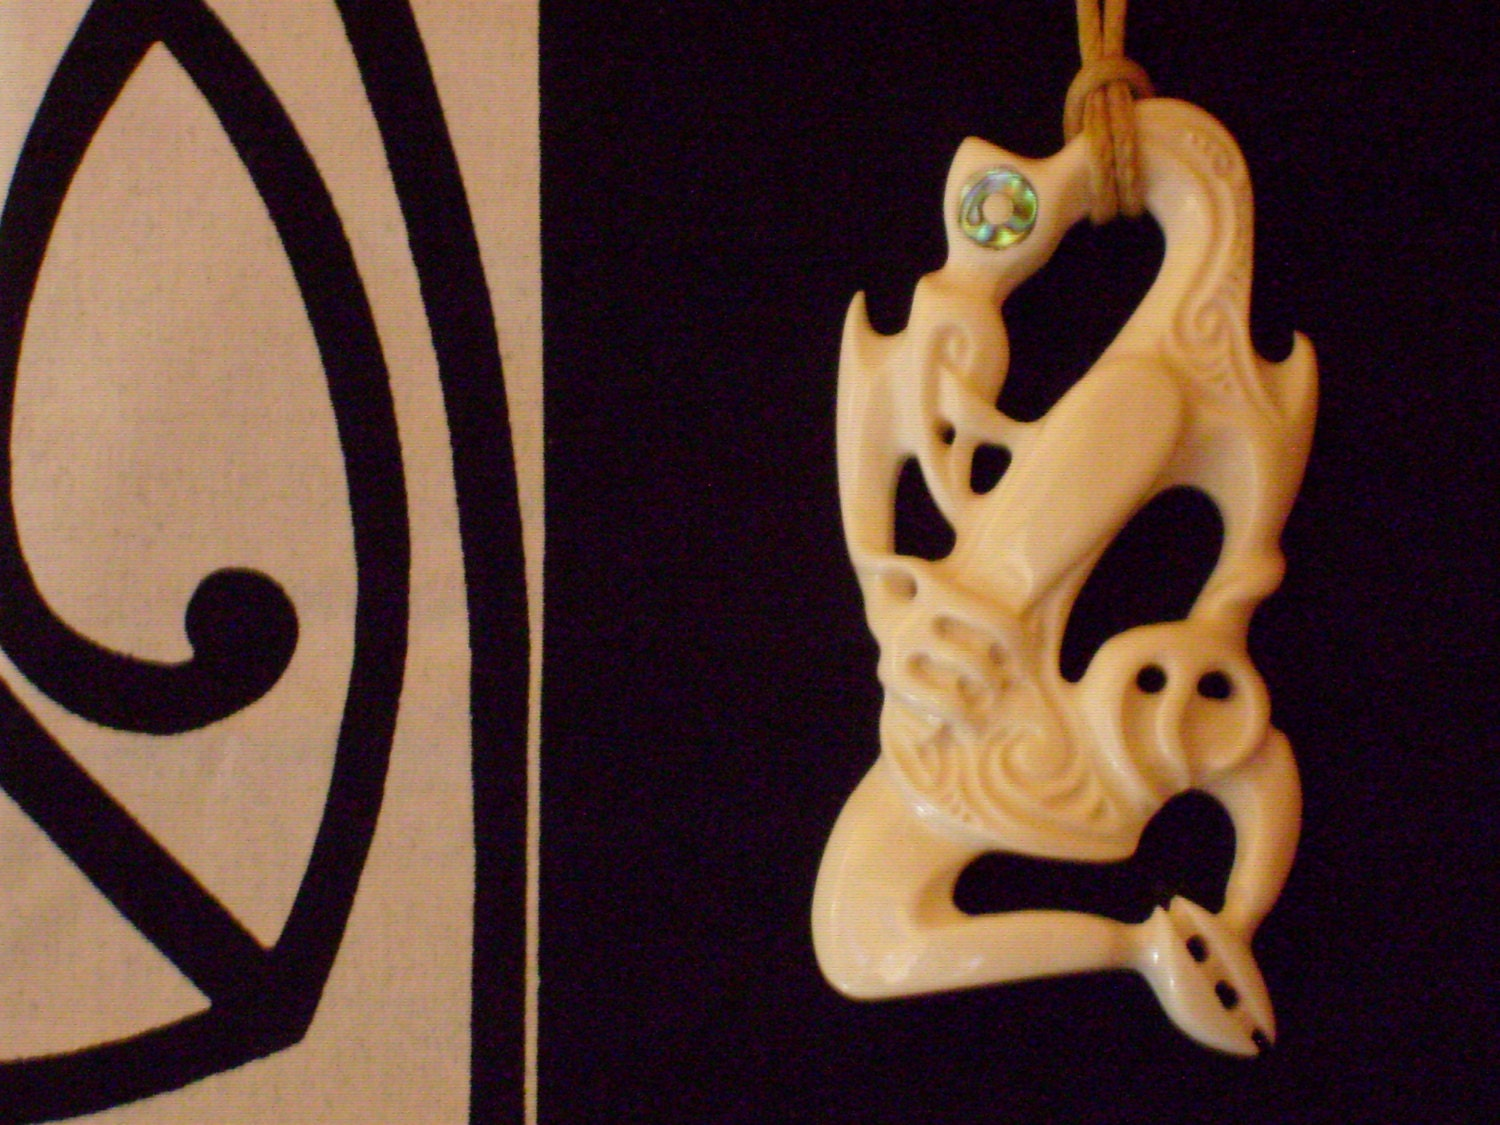 Authentic new zealand maori bone carving by propus on etsy